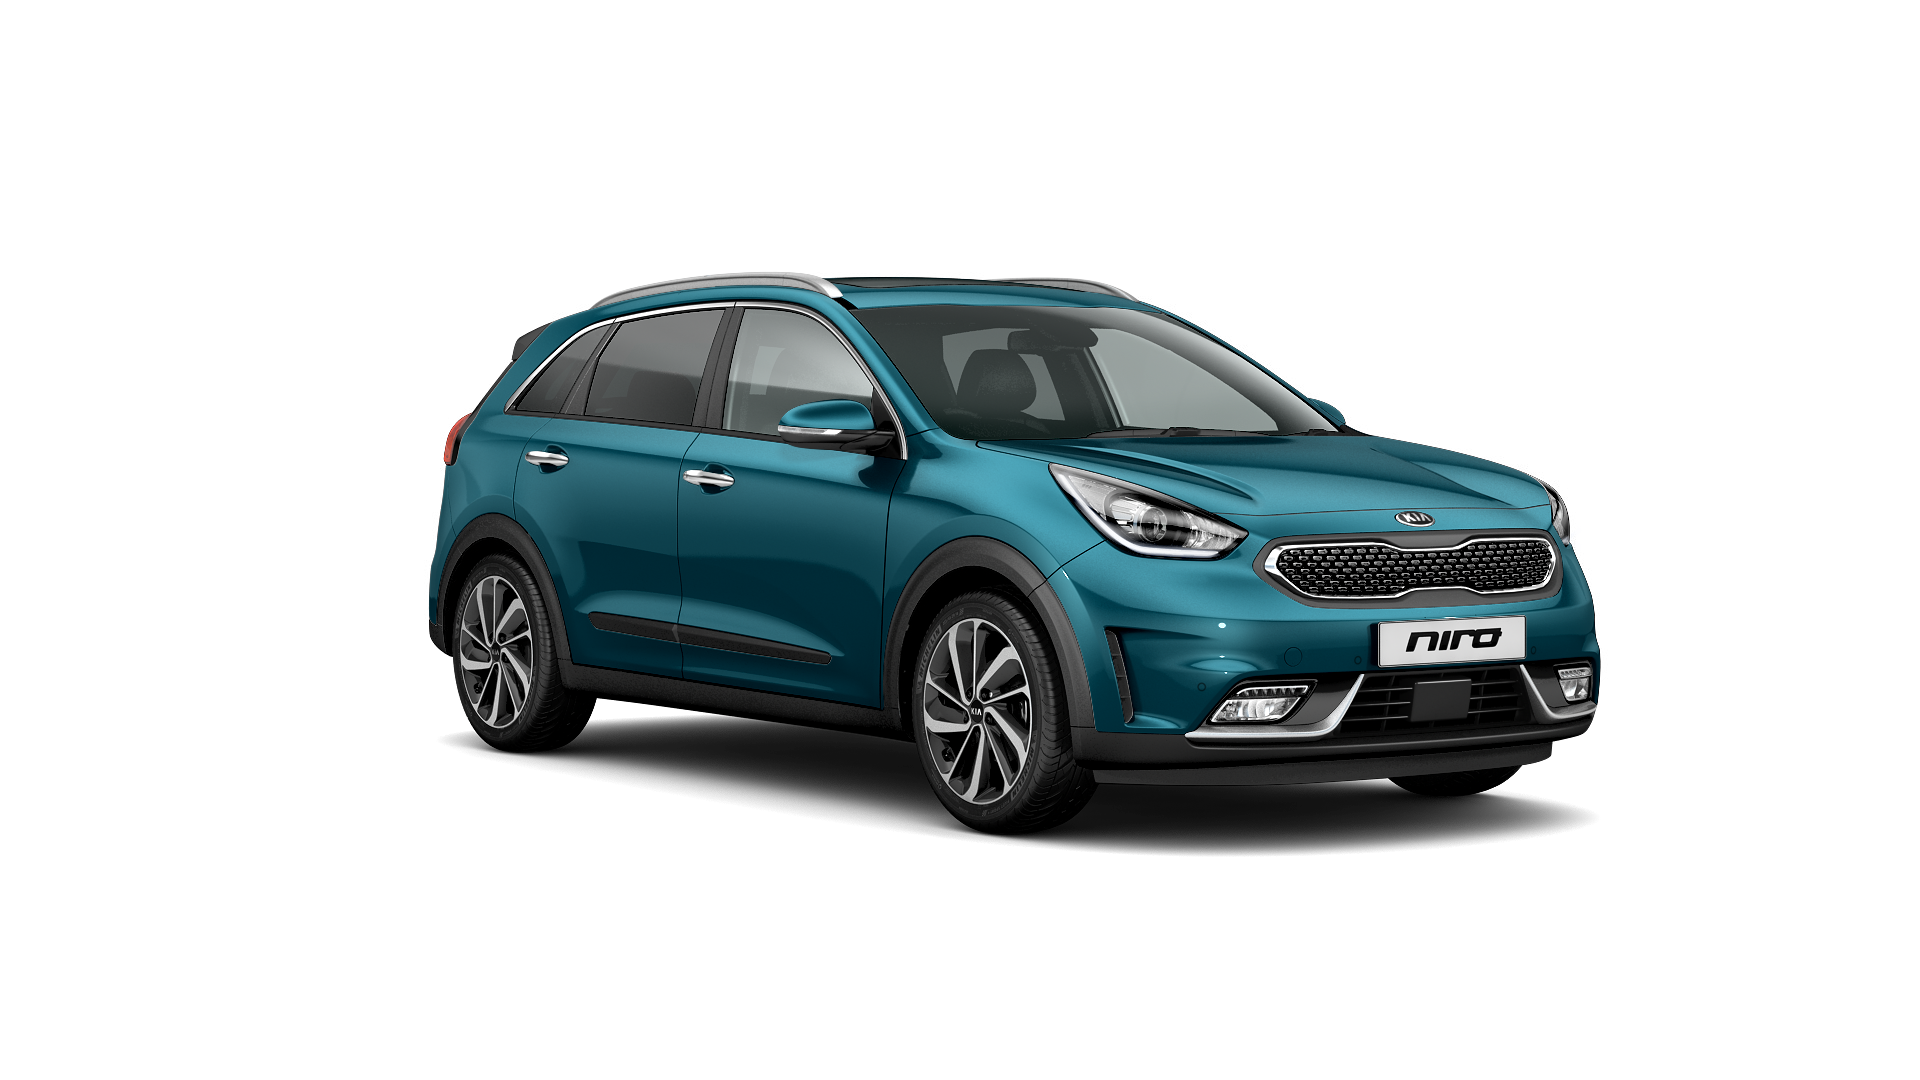 new kia niro cars for sale at downeys car dealer based in. Black Bedroom Furniture Sets. Home Design Ideas